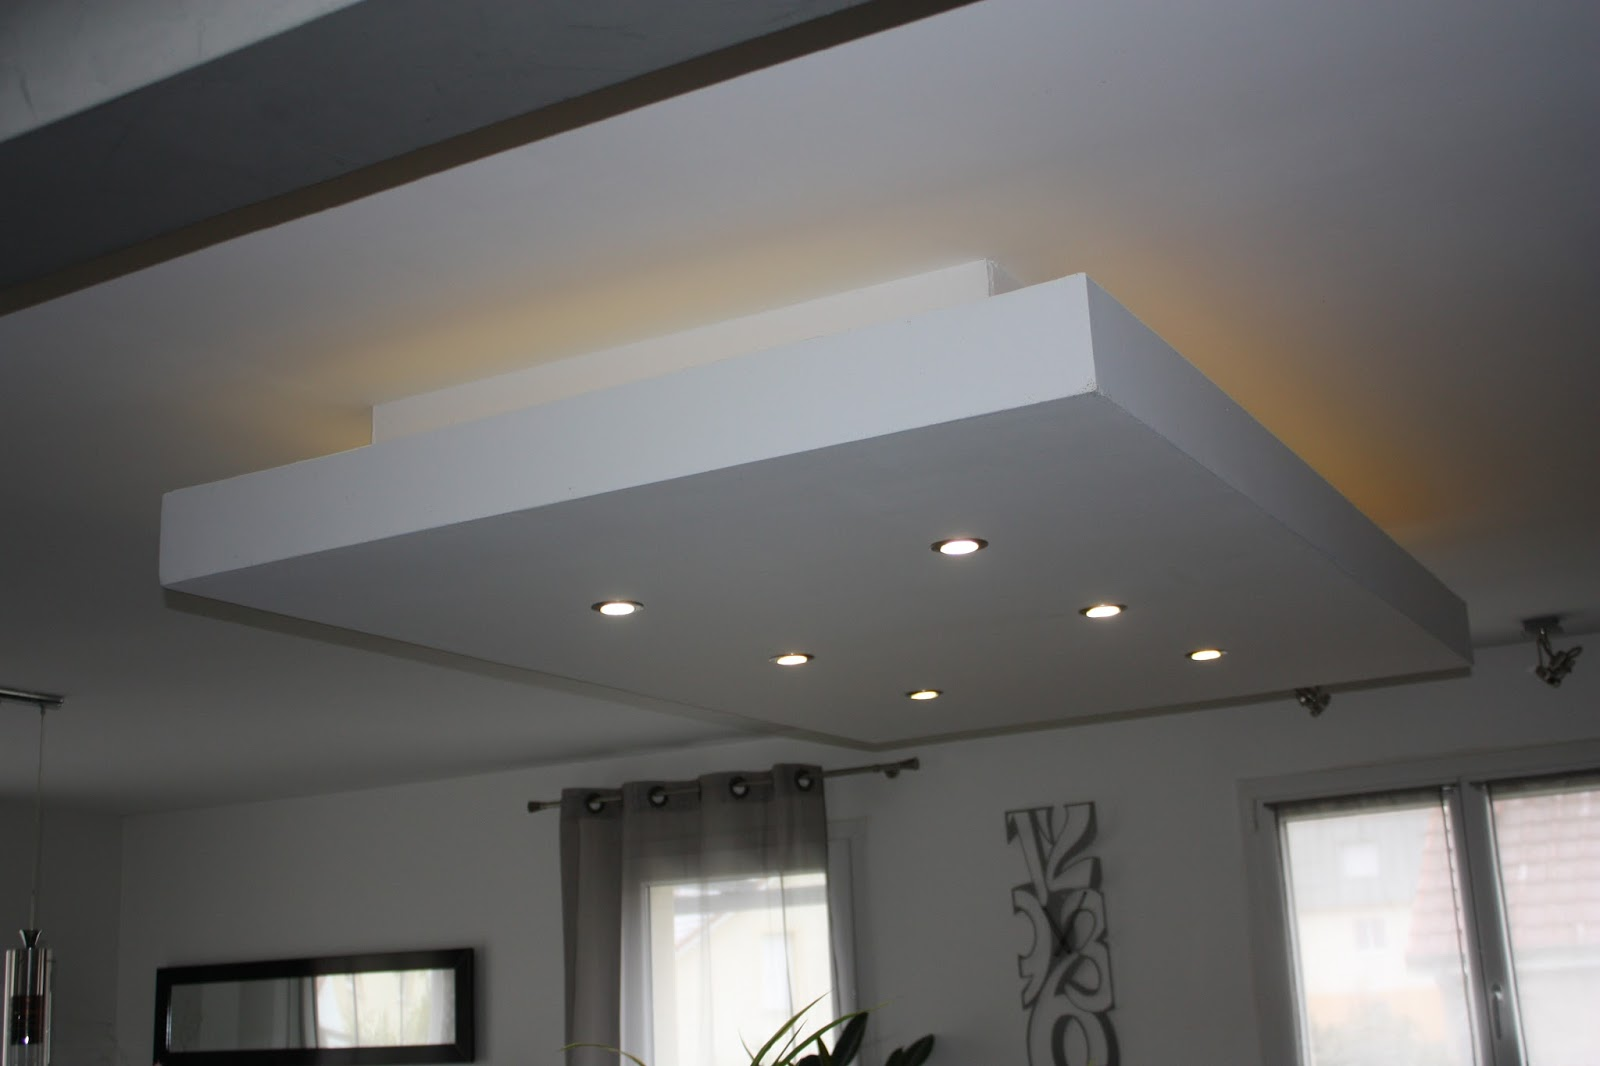 eclairage indirect plafond led obasinc